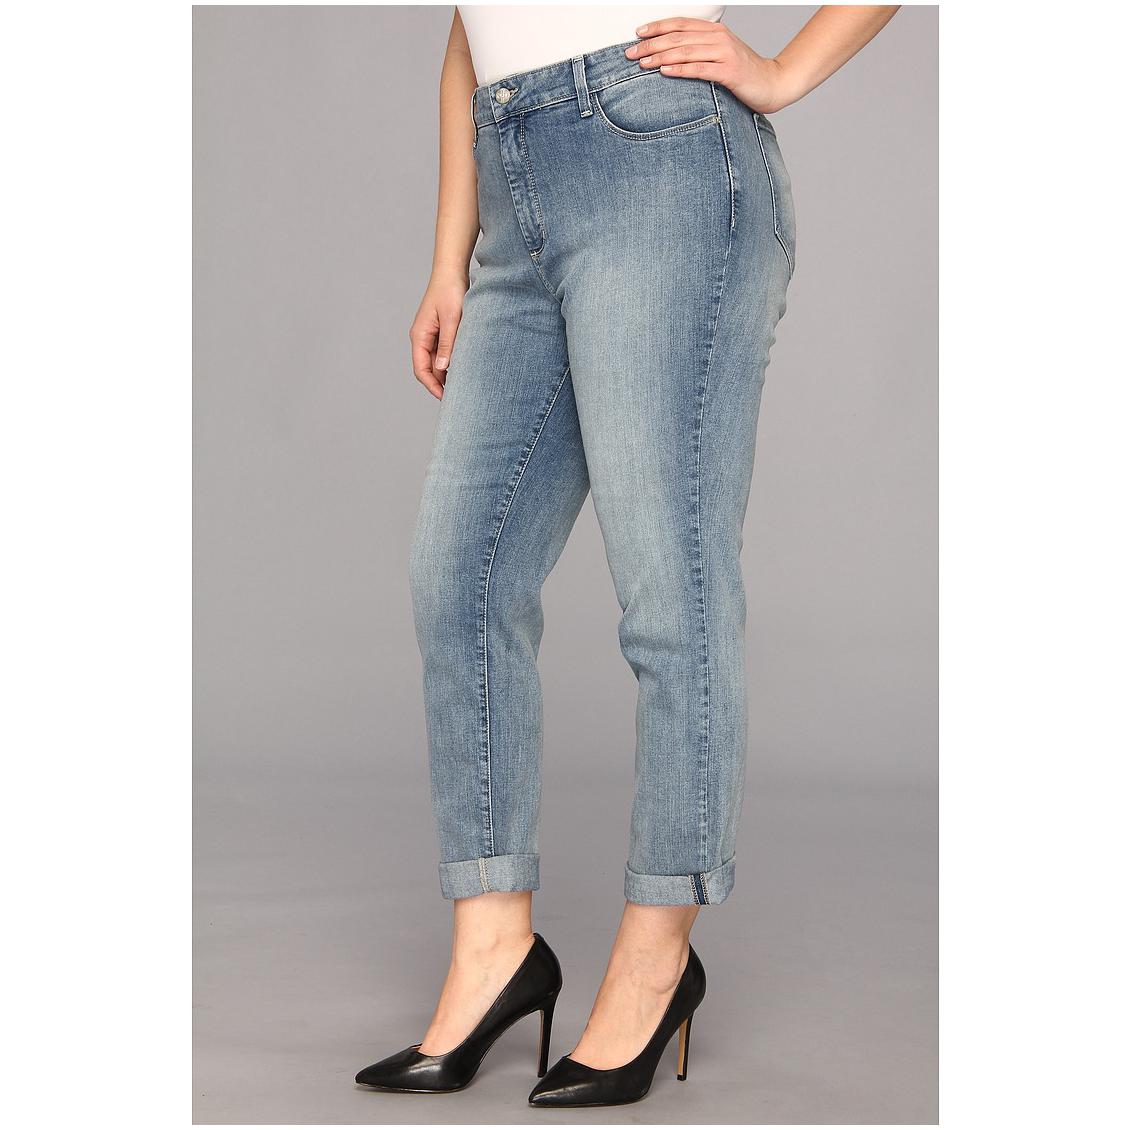 4b282392c2a ... I hope you break in style without flaming a stab in your pocket. Buy  plus size jeans online at discount with denim and cotton to Lycia and  corduroy.